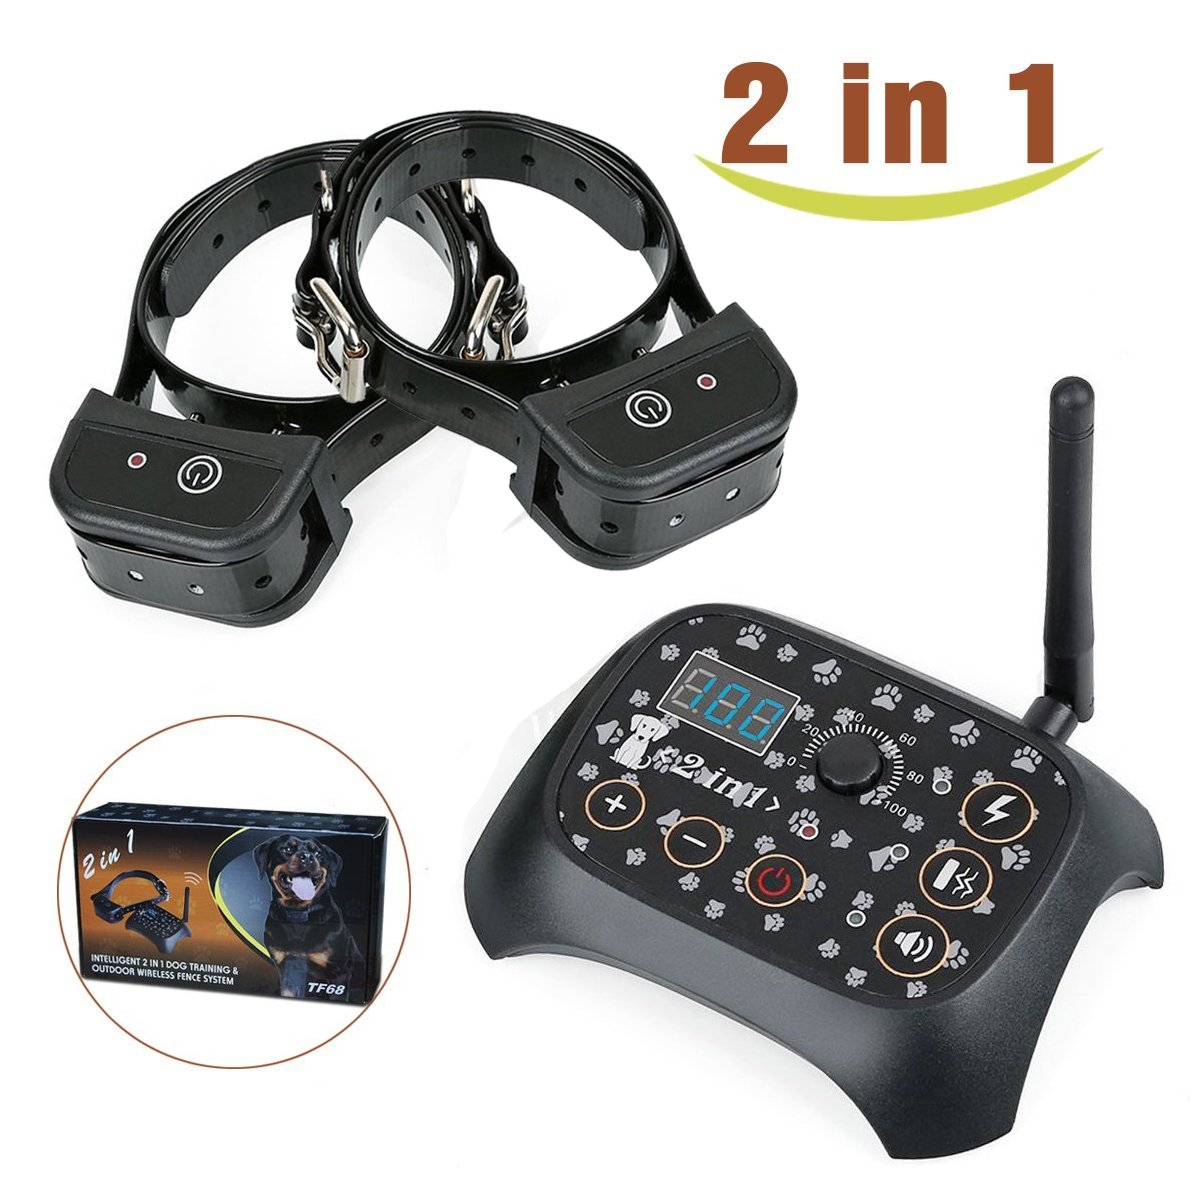 Invisible Dog Fence - 2 In 1 Dog Training & Outdoor Wireless Fence Containment System with Remote-Controlled Rechargeable Transmitter & Training Collar (black) - 2 Dog System